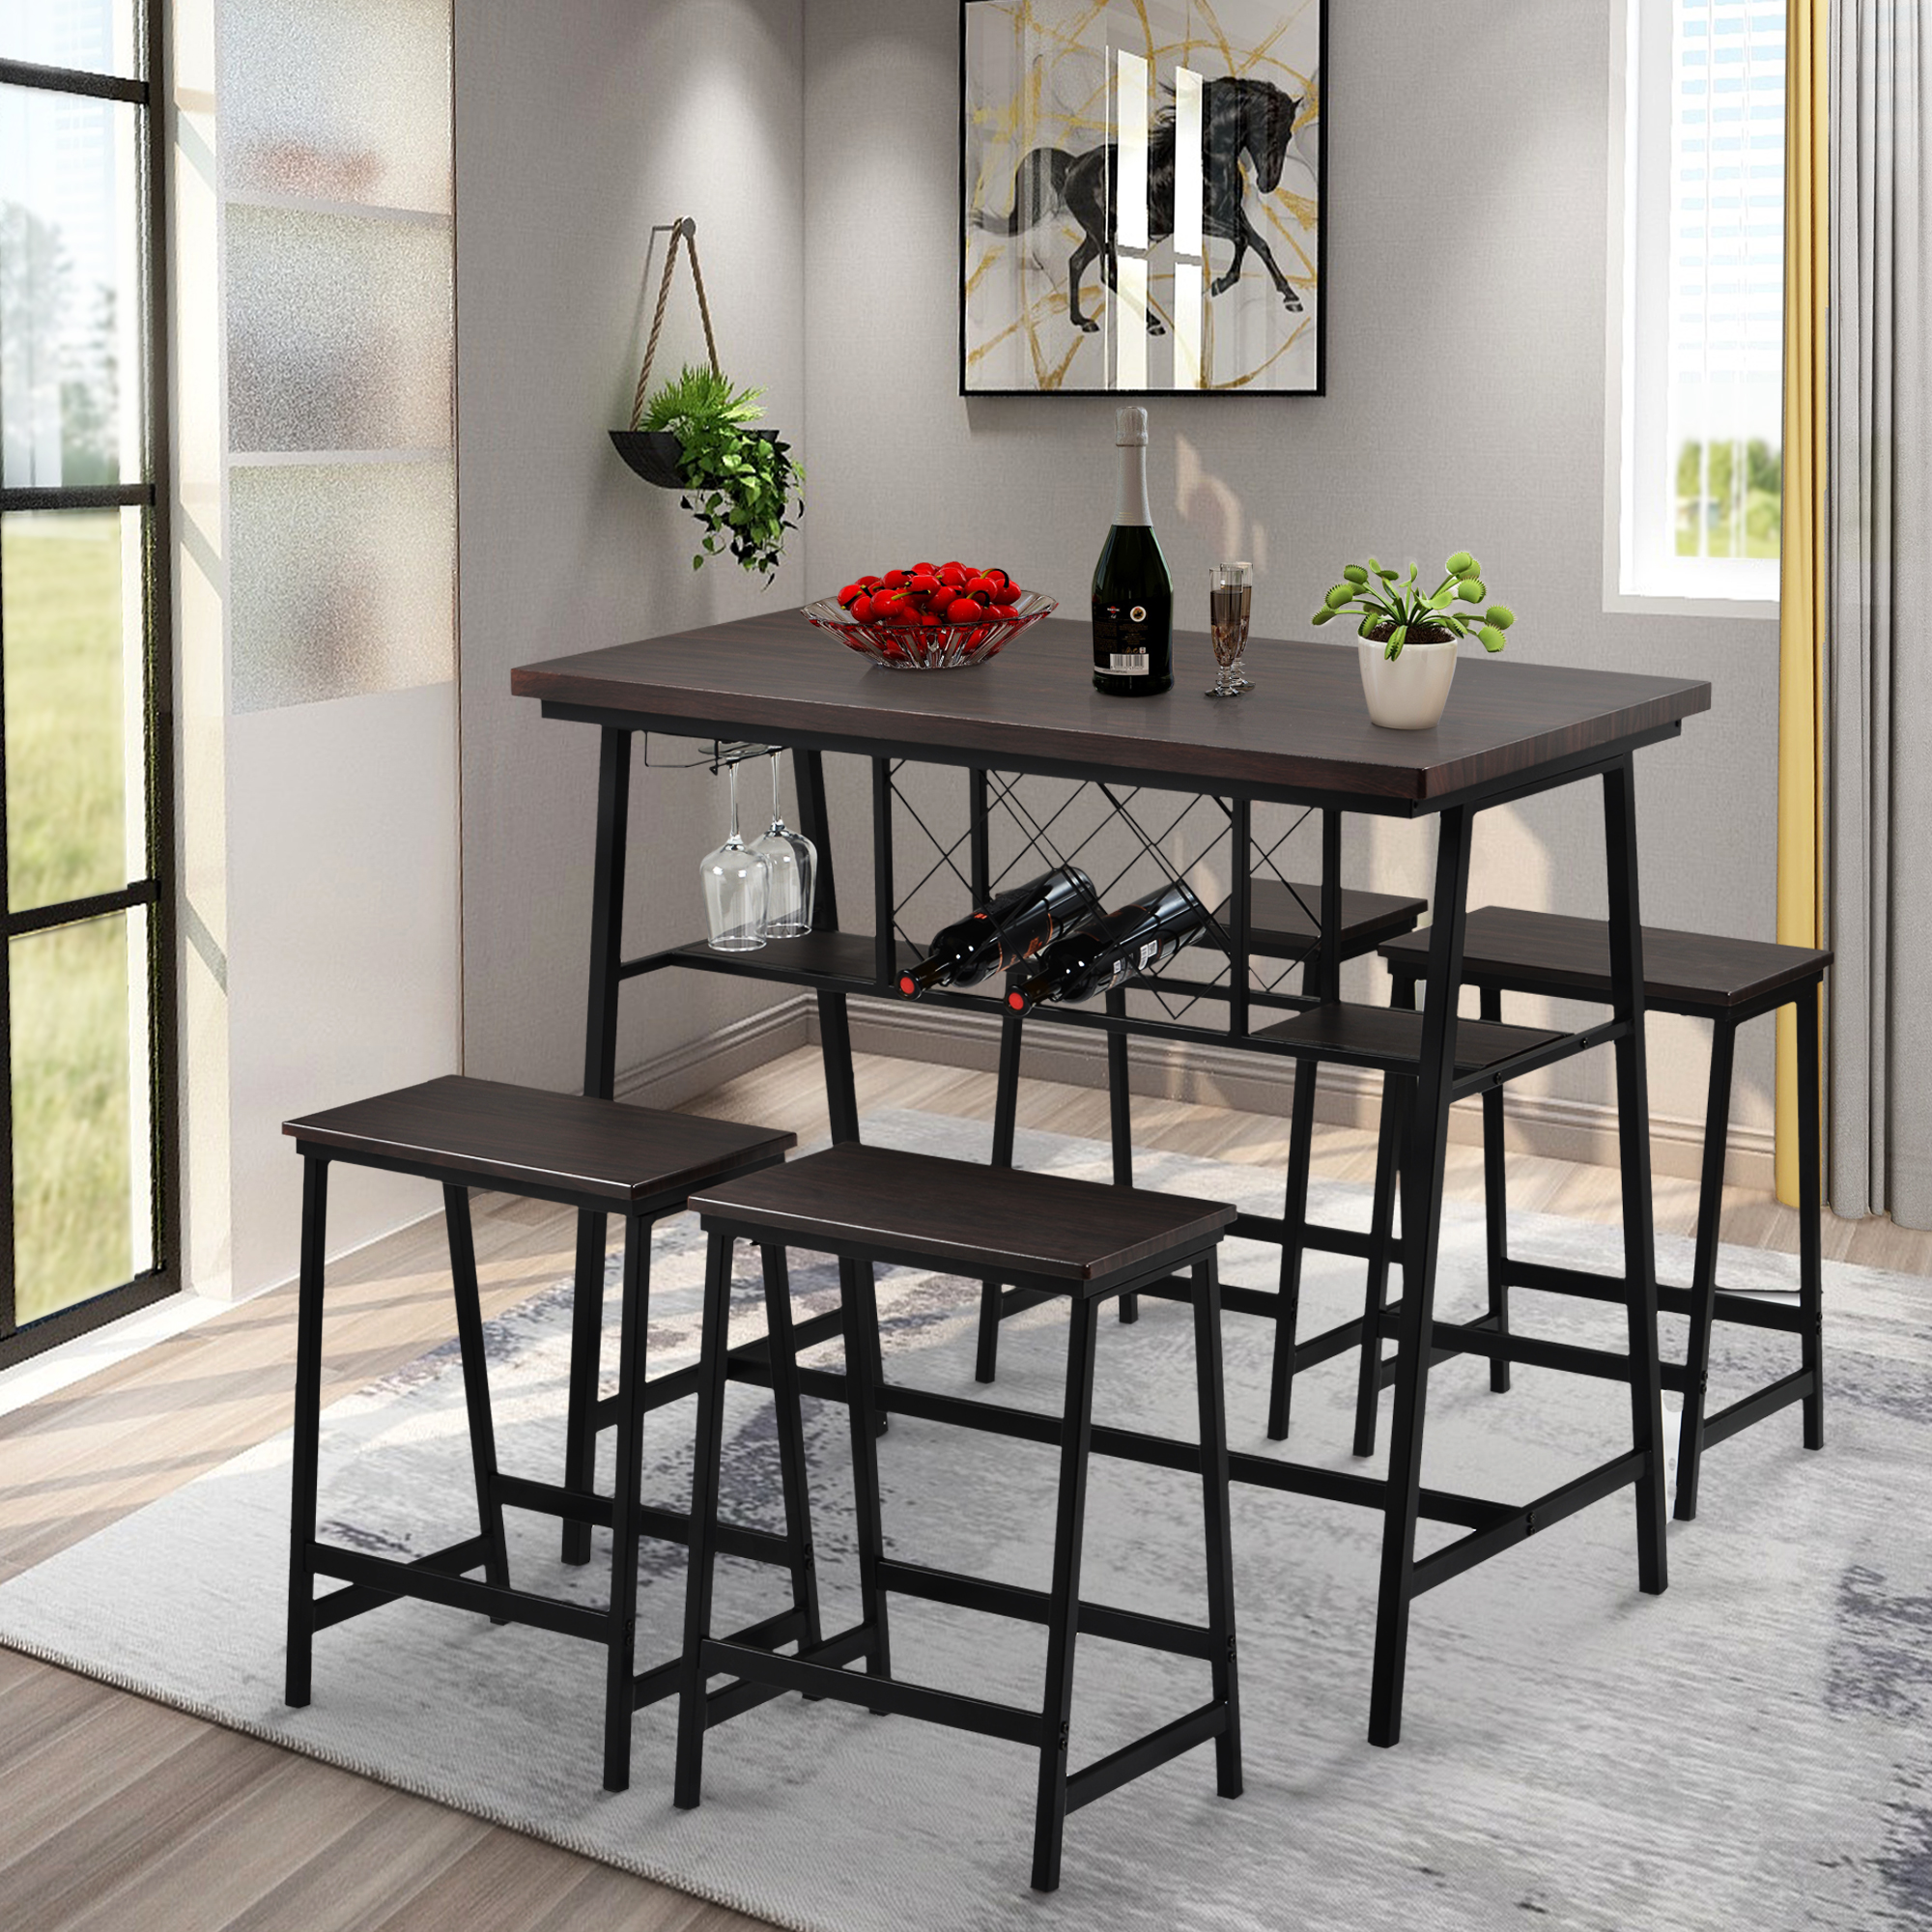 Kitchen Dining Table Set for 4, Metal Counter Height ...